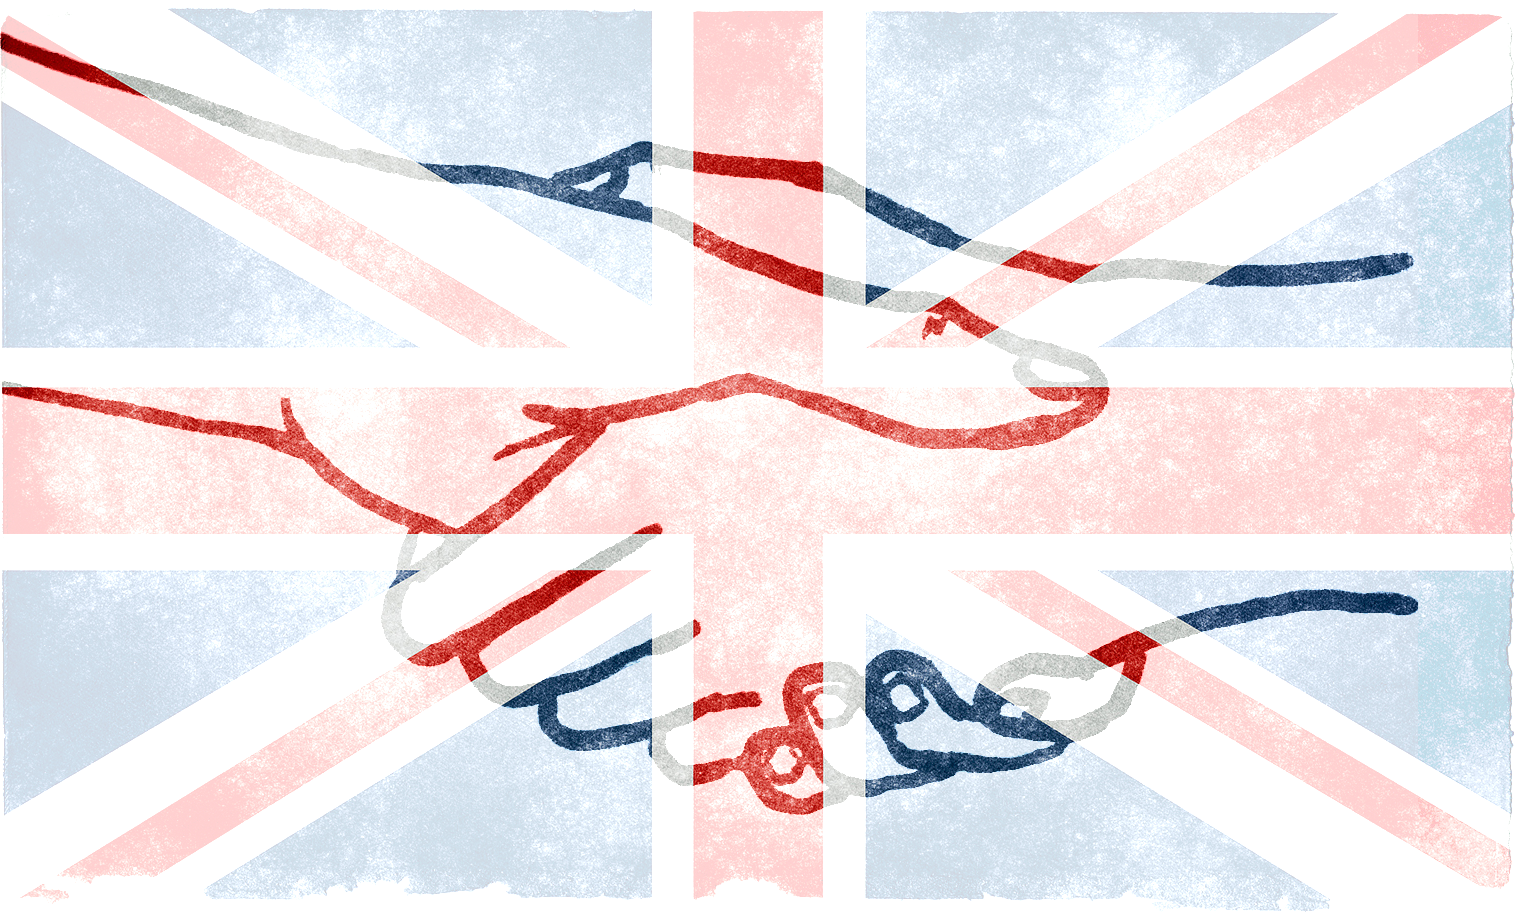 Is pursuing 'British values' the best way to go about pursuing social cohesion? (Flag by Nicolas Raymond. Handshake by Aidan Jones.)